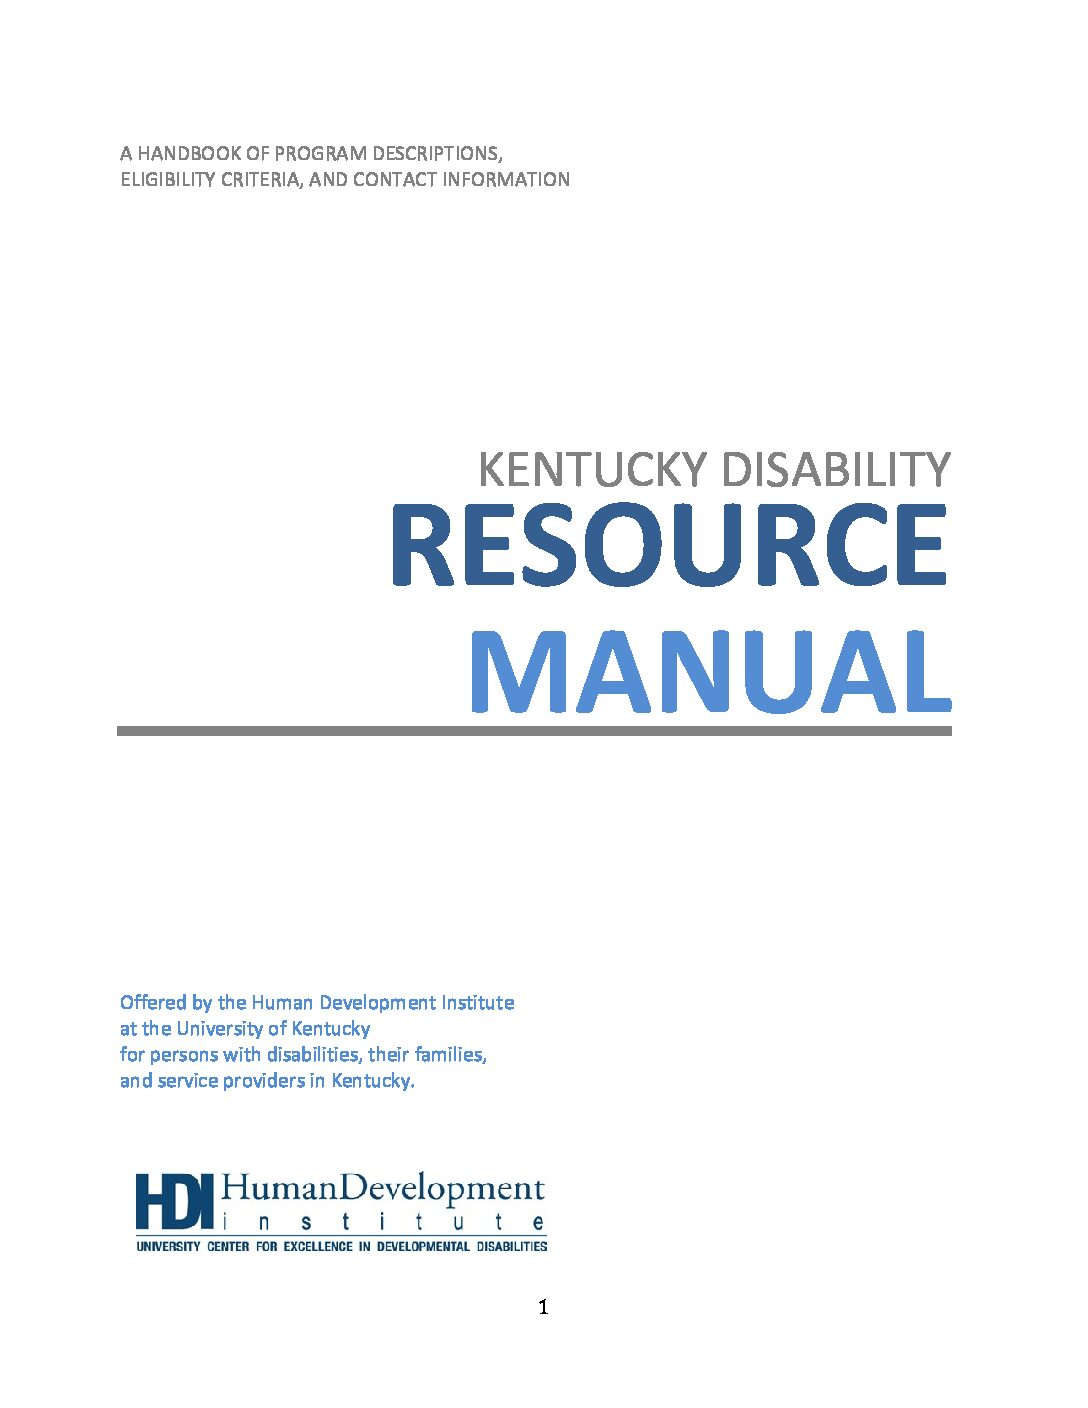 Kentucky Disability Resource Manual